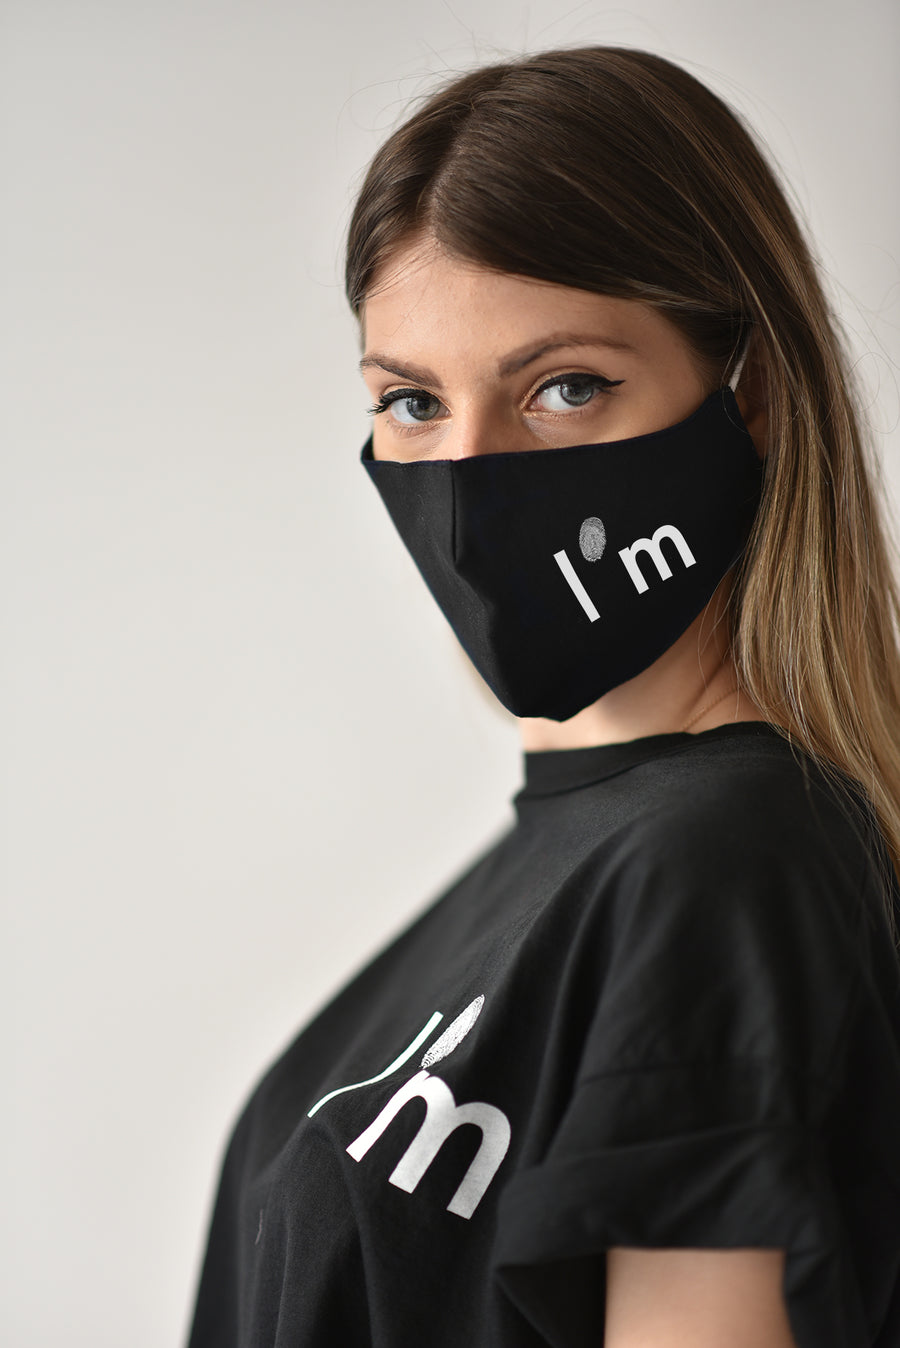 I'M SEP MASK & CROP '90 - Sep T-Shirt